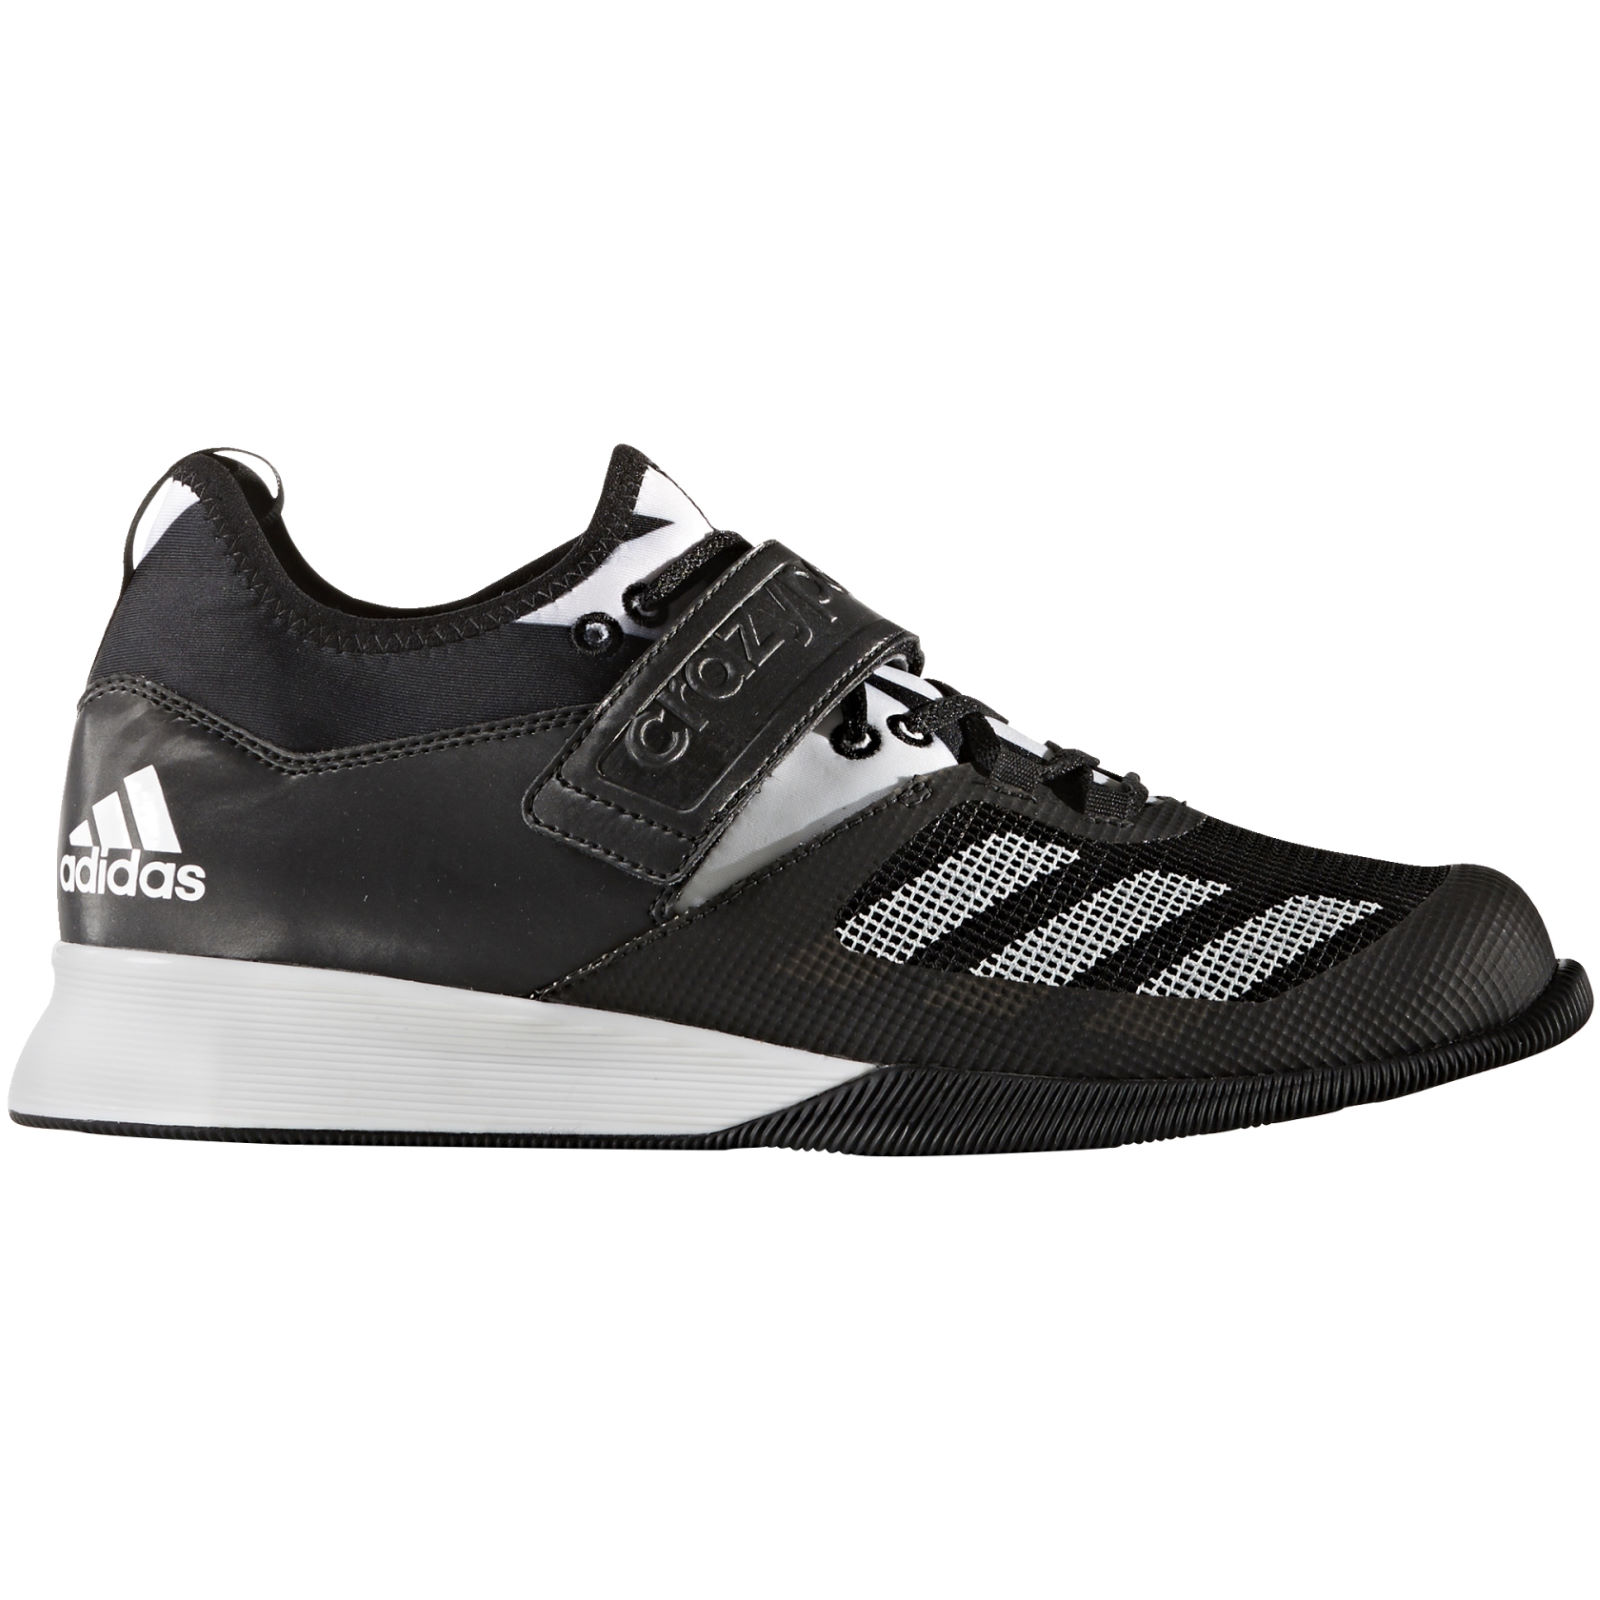 Adidas Training Shoes Review